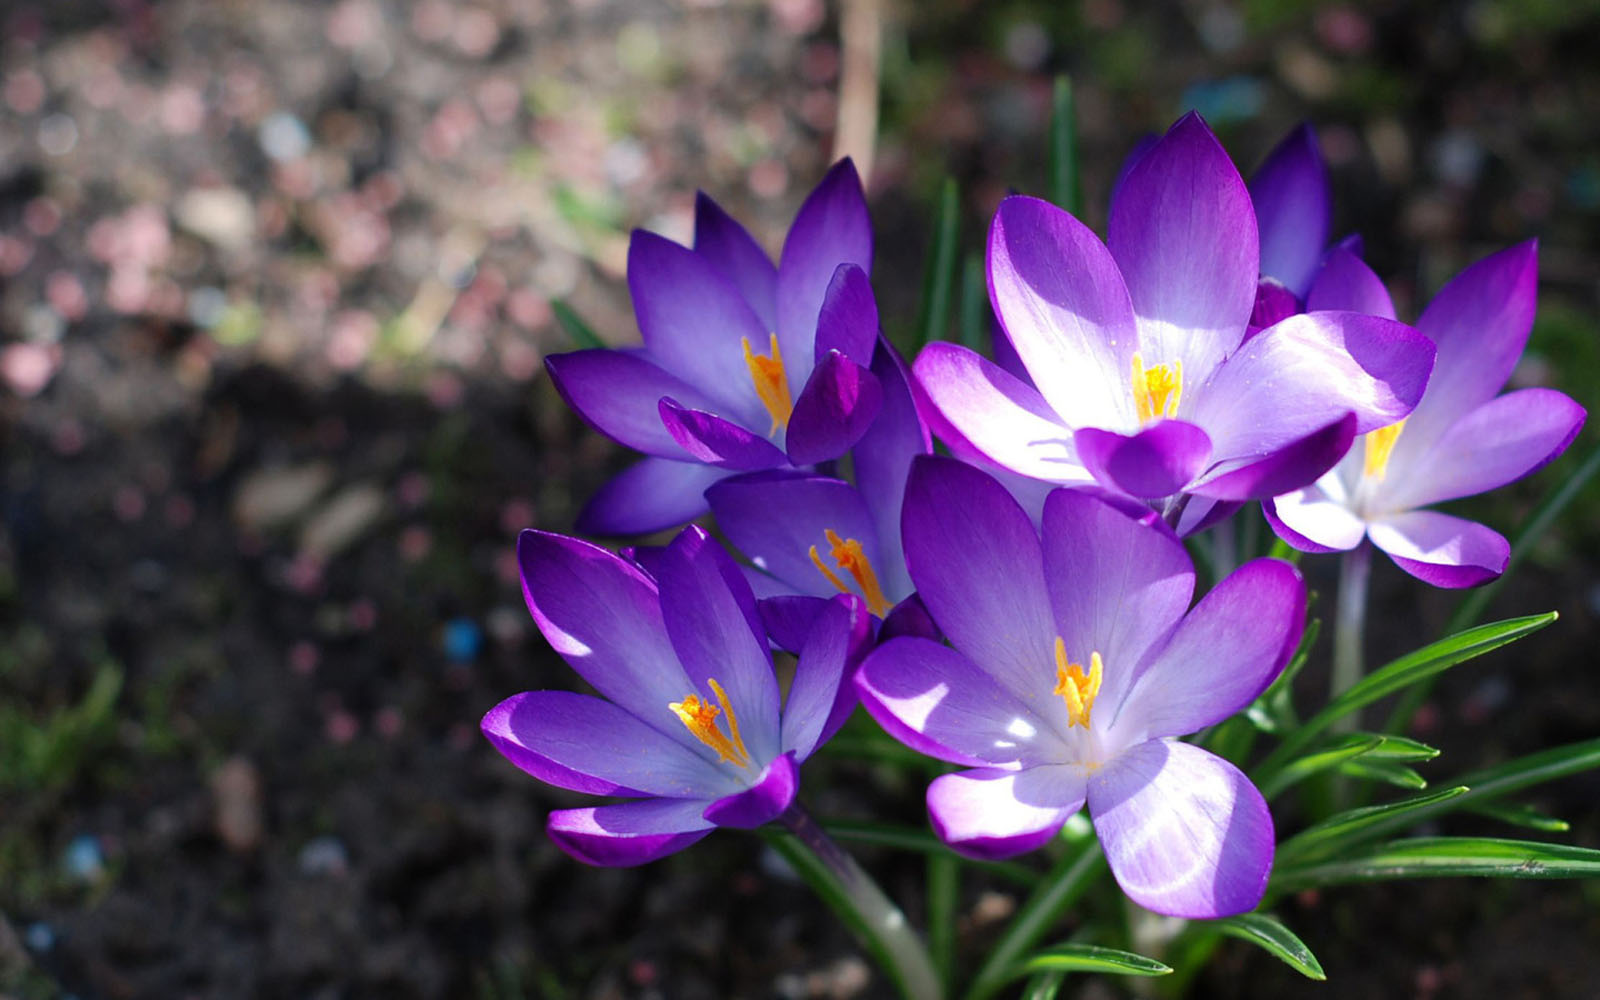 Crocus Flowers Wallpapers, PurpleCrocus Flowers Desktop Wallpapers